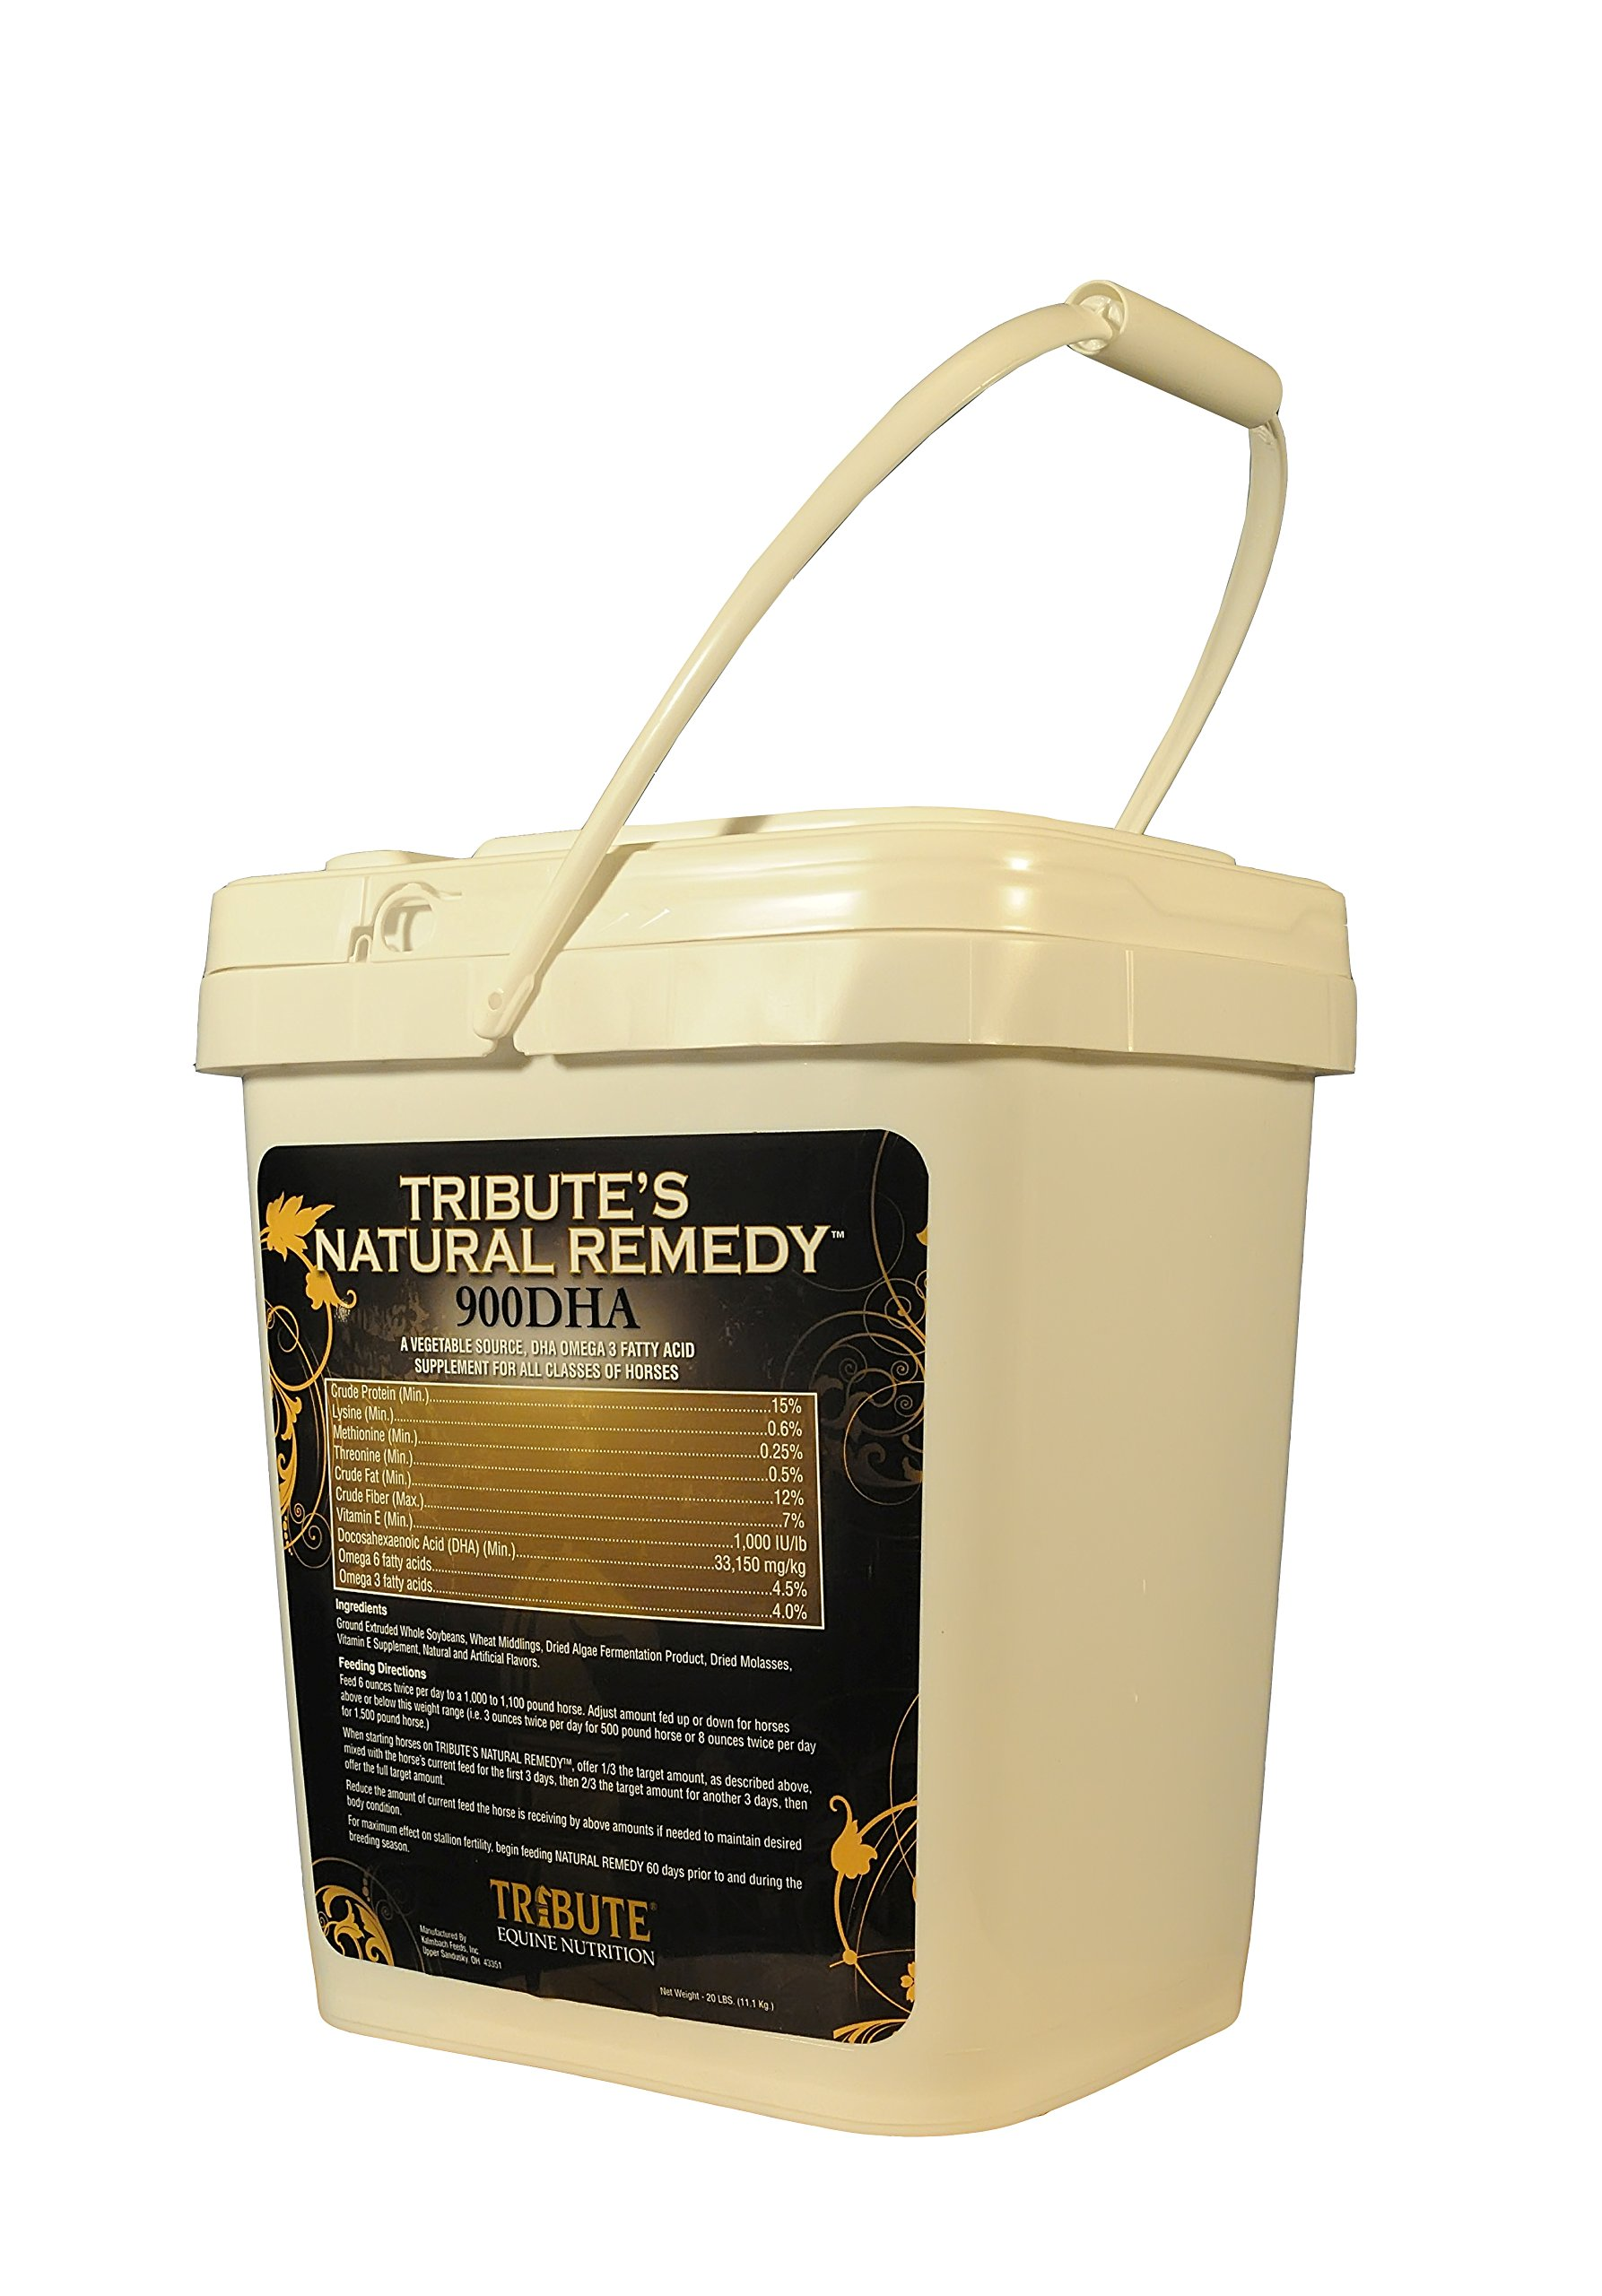 Kalmbach Feeds Tribute's Natural Remedy for Horse, 20 lb